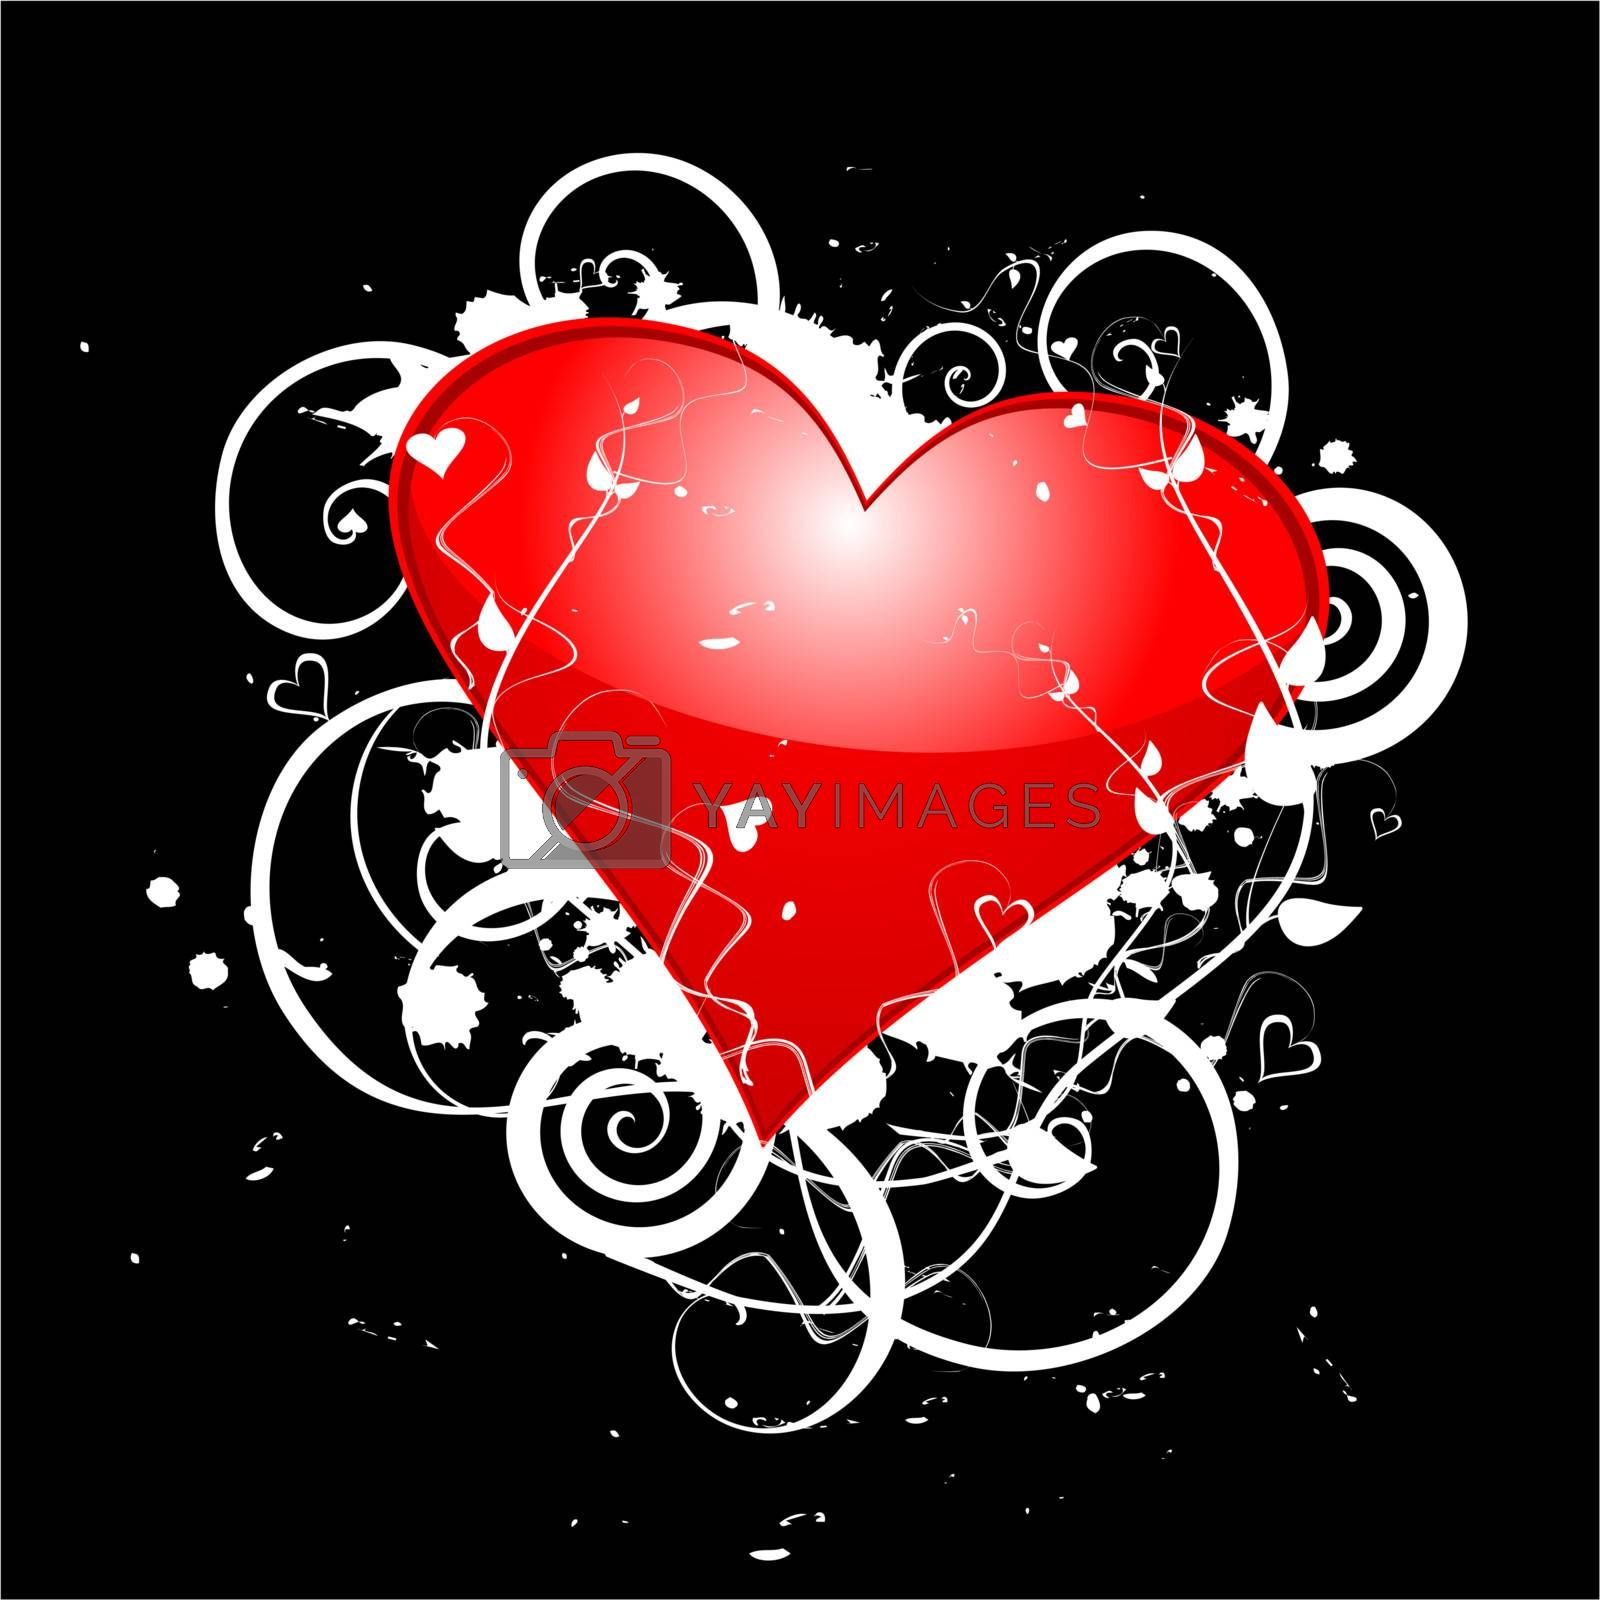 Valentines Day Shiny Red Heart On Grunge Floral, vector illustration